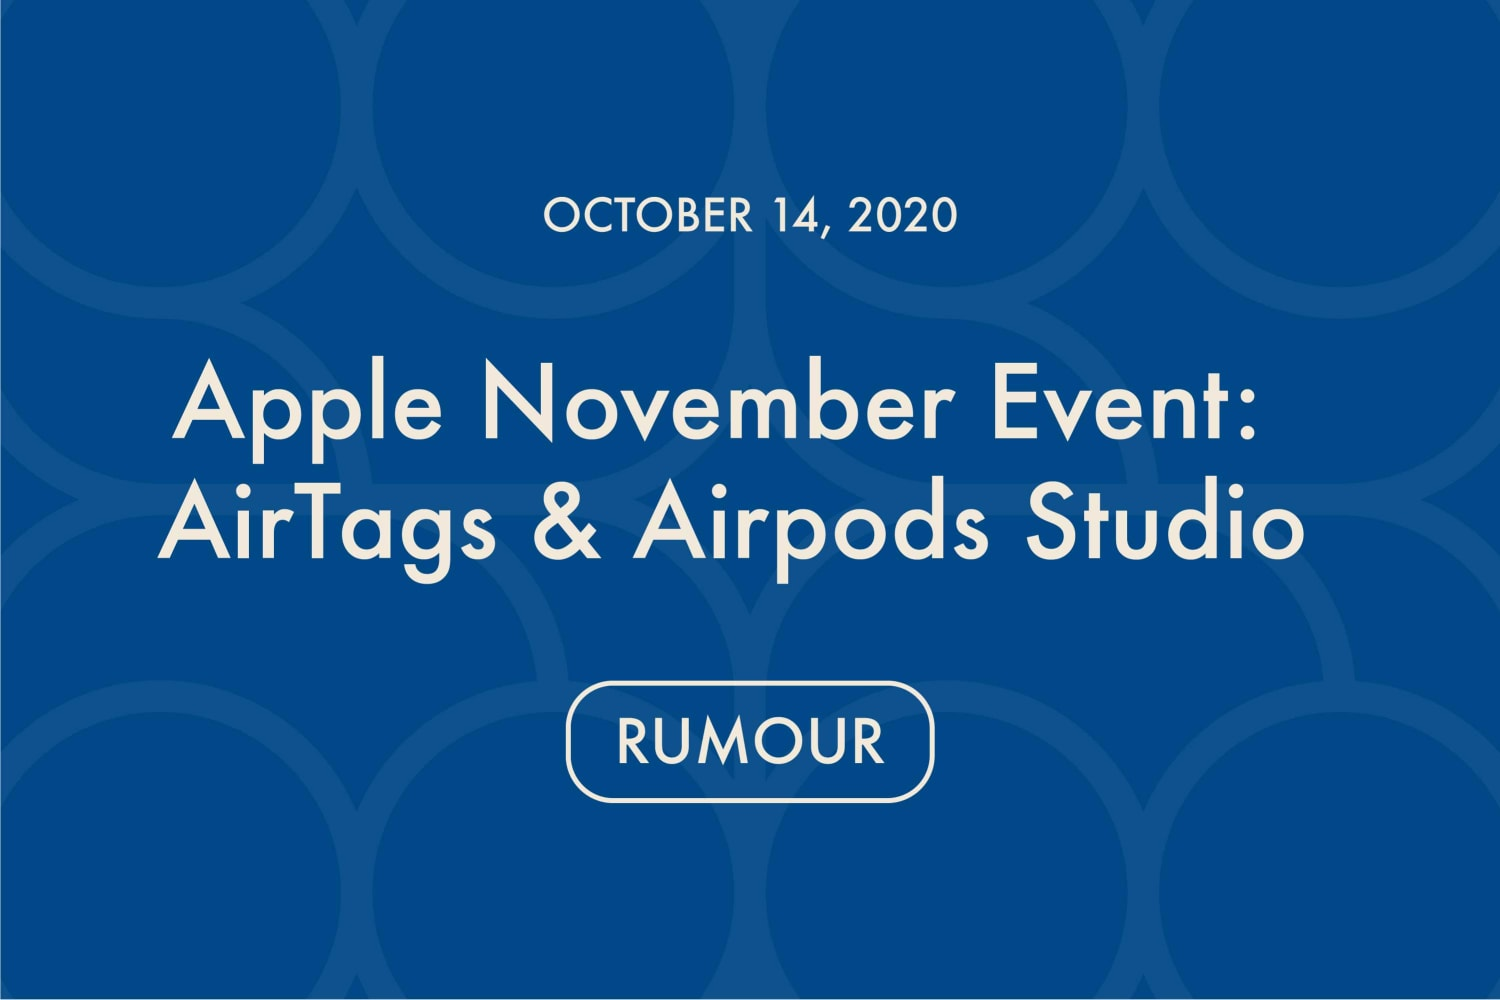 apple-november-event-airtags-and-airpods-studio-rumors-20201014-1